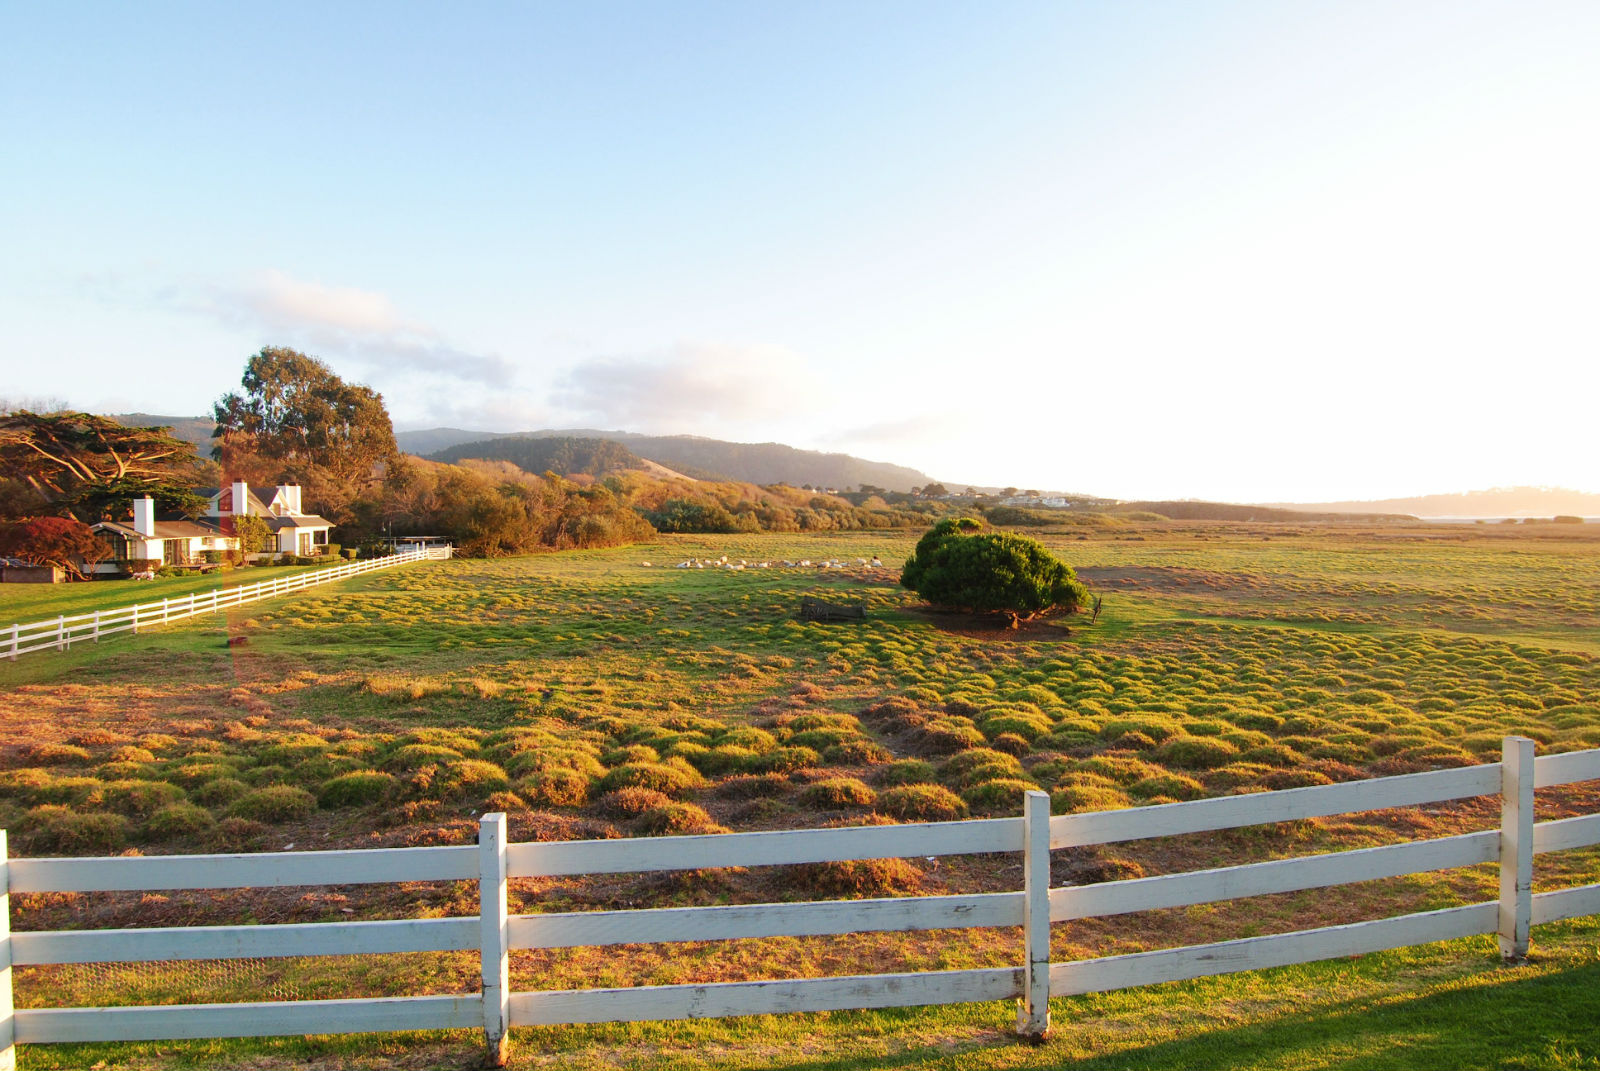 A view from the Mission Ranch Inn